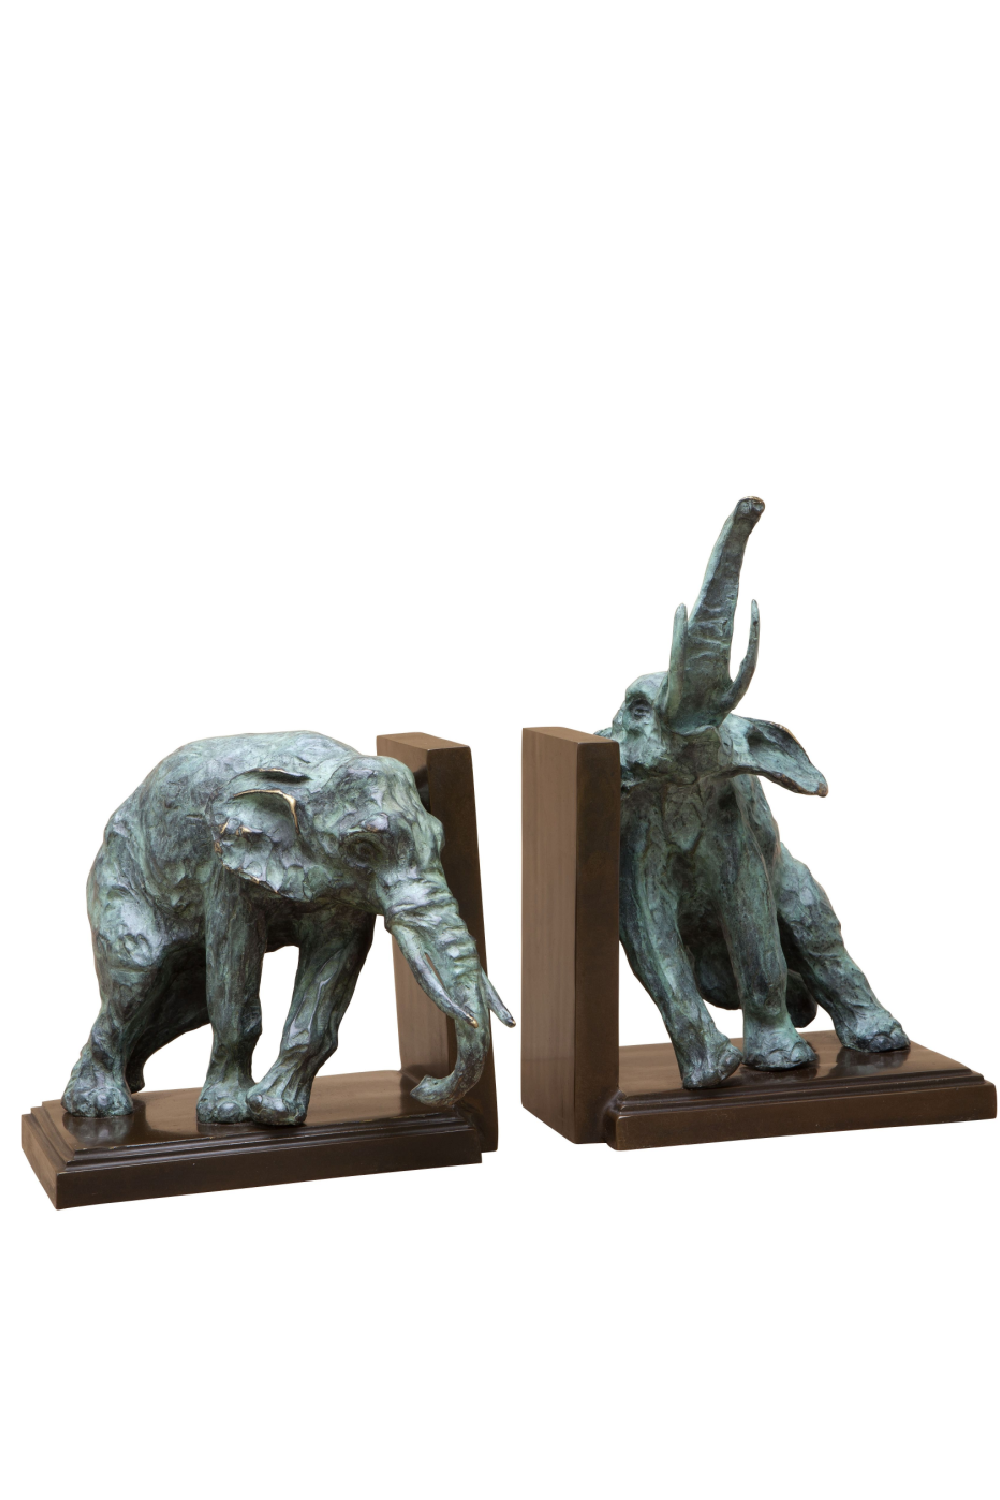 Lazy Elephant Bookends (set of 2) | Eichholtz | #1 Eichholtz Online Retailer